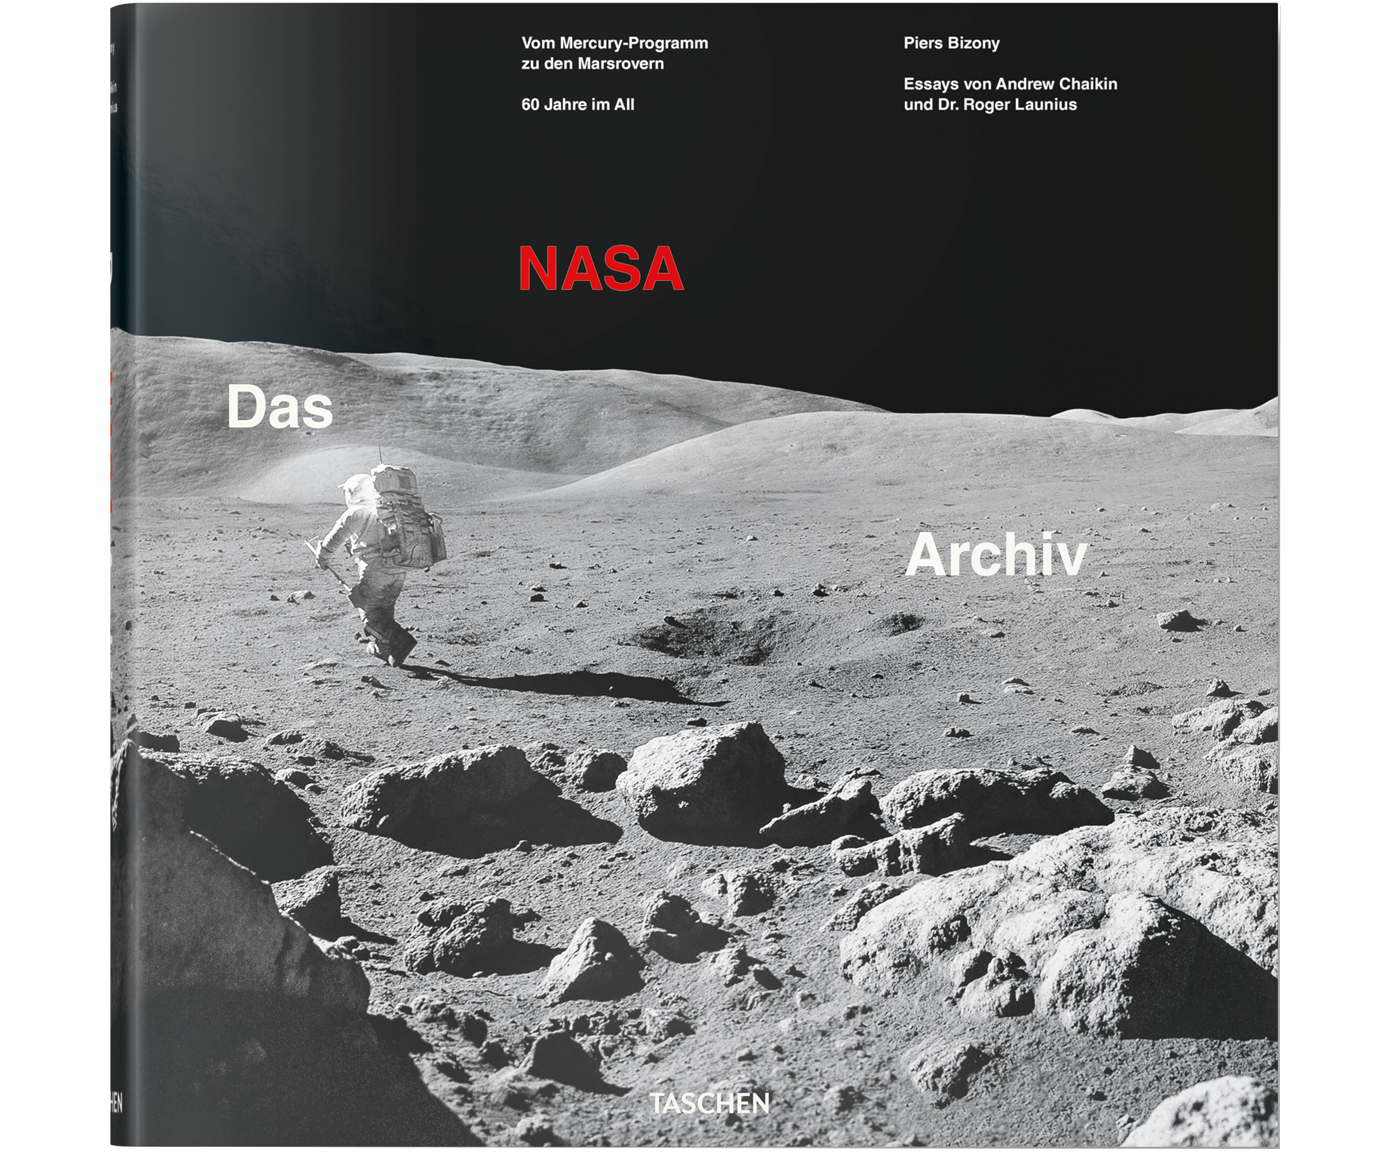 Libro illustrato The NASA Archives: 60 Years In Space, Copertina rigida, carta, Multicolore, Lung. 33 x Larg. 33 cm